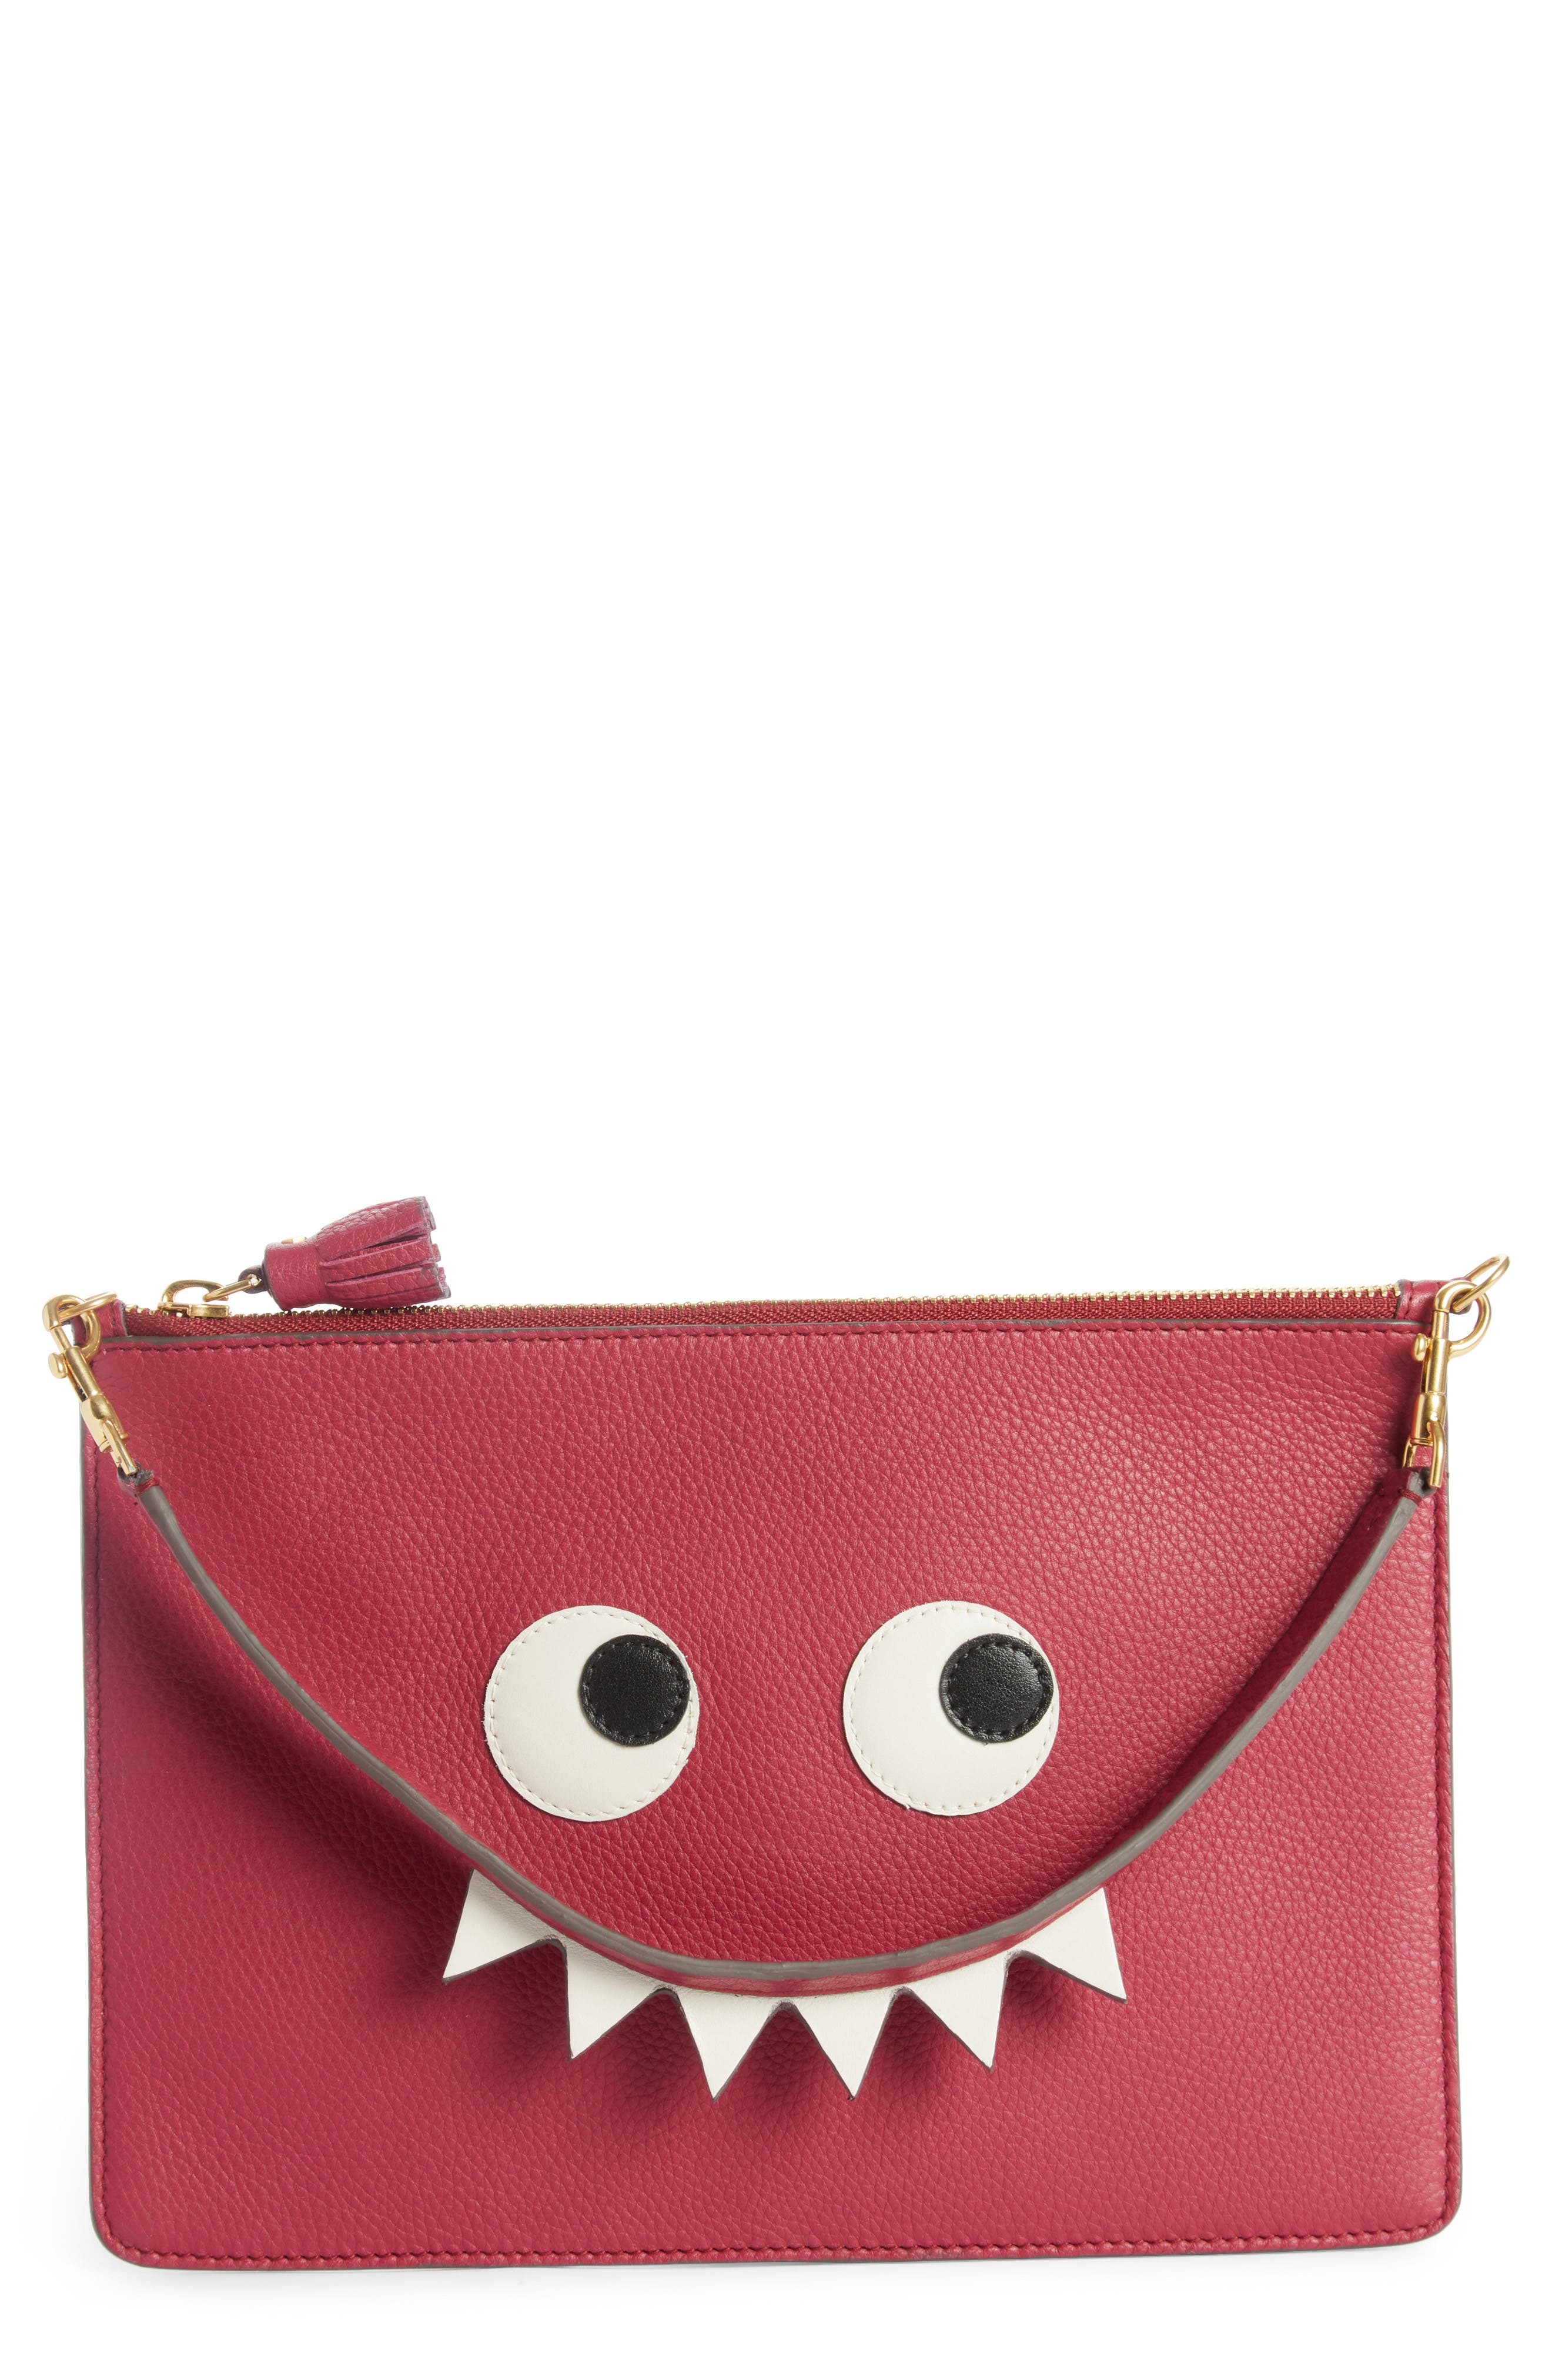 Alternate Image 1 Selected - Anya Hindmarch Eyes Leather Zip Pouch